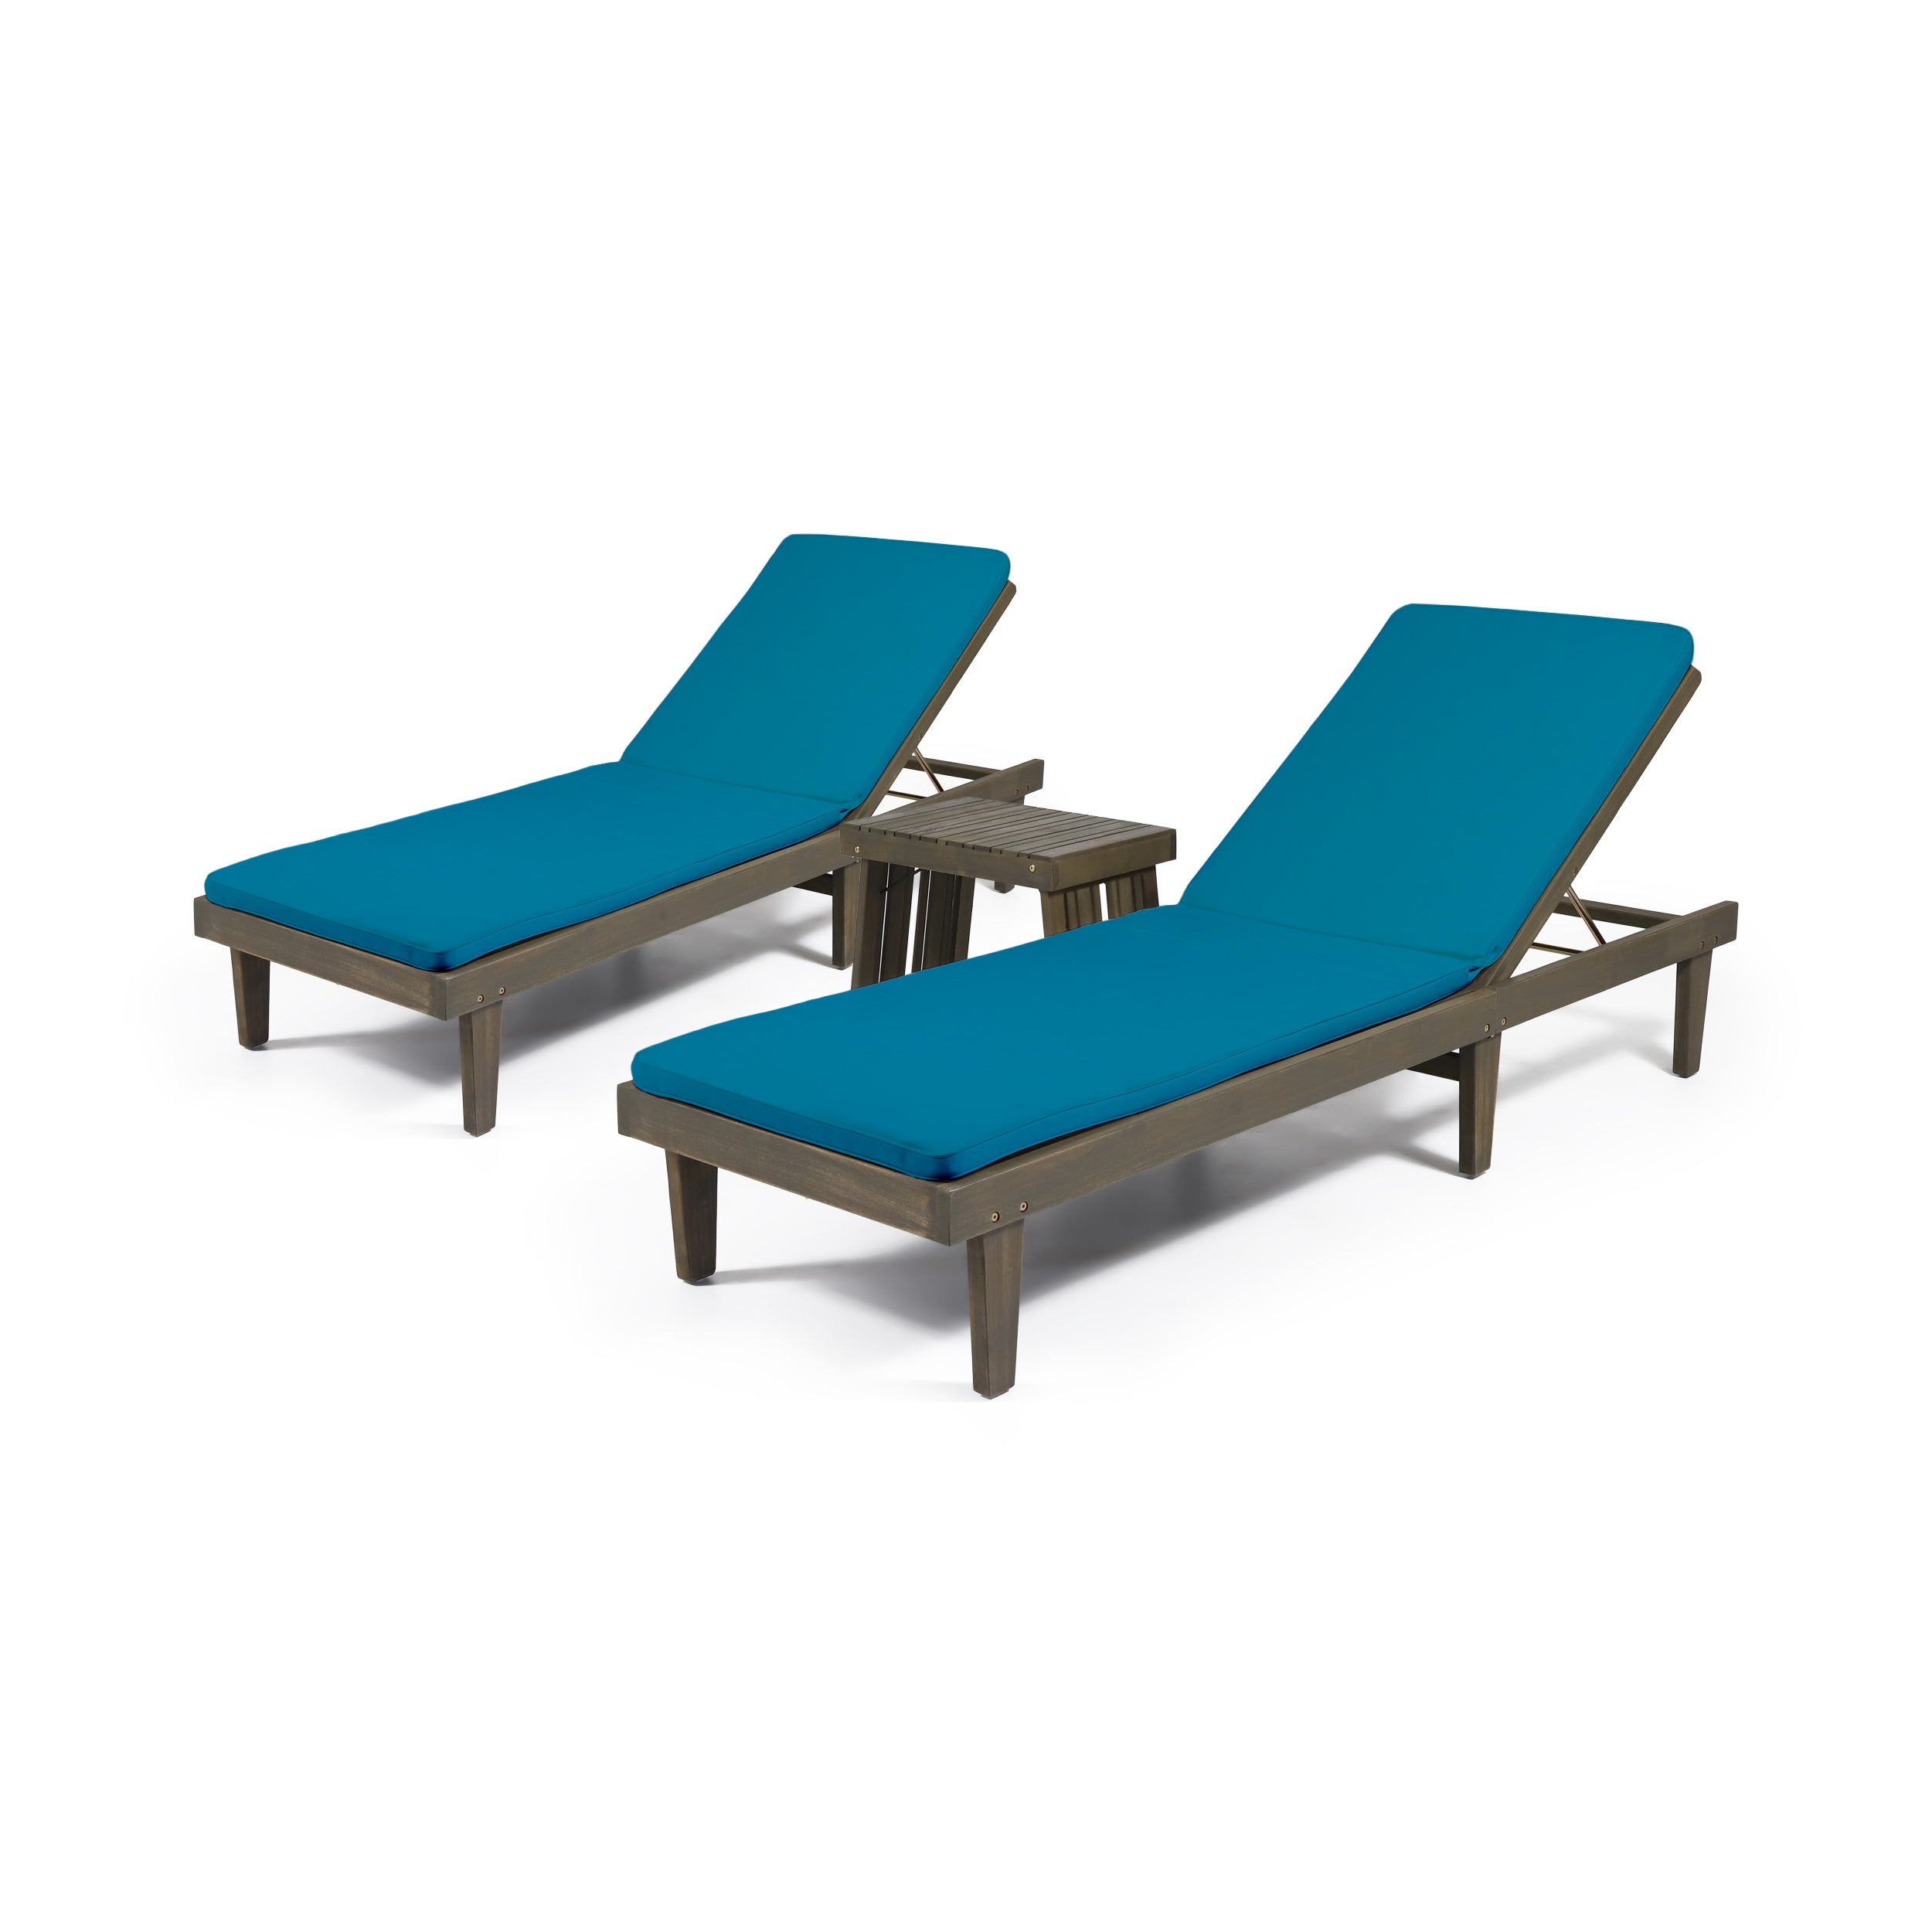 Addisyn Outdoor Acacia Wood 3 Piece Chaise Lounge Set with Water Resistant Cushions GrayCream